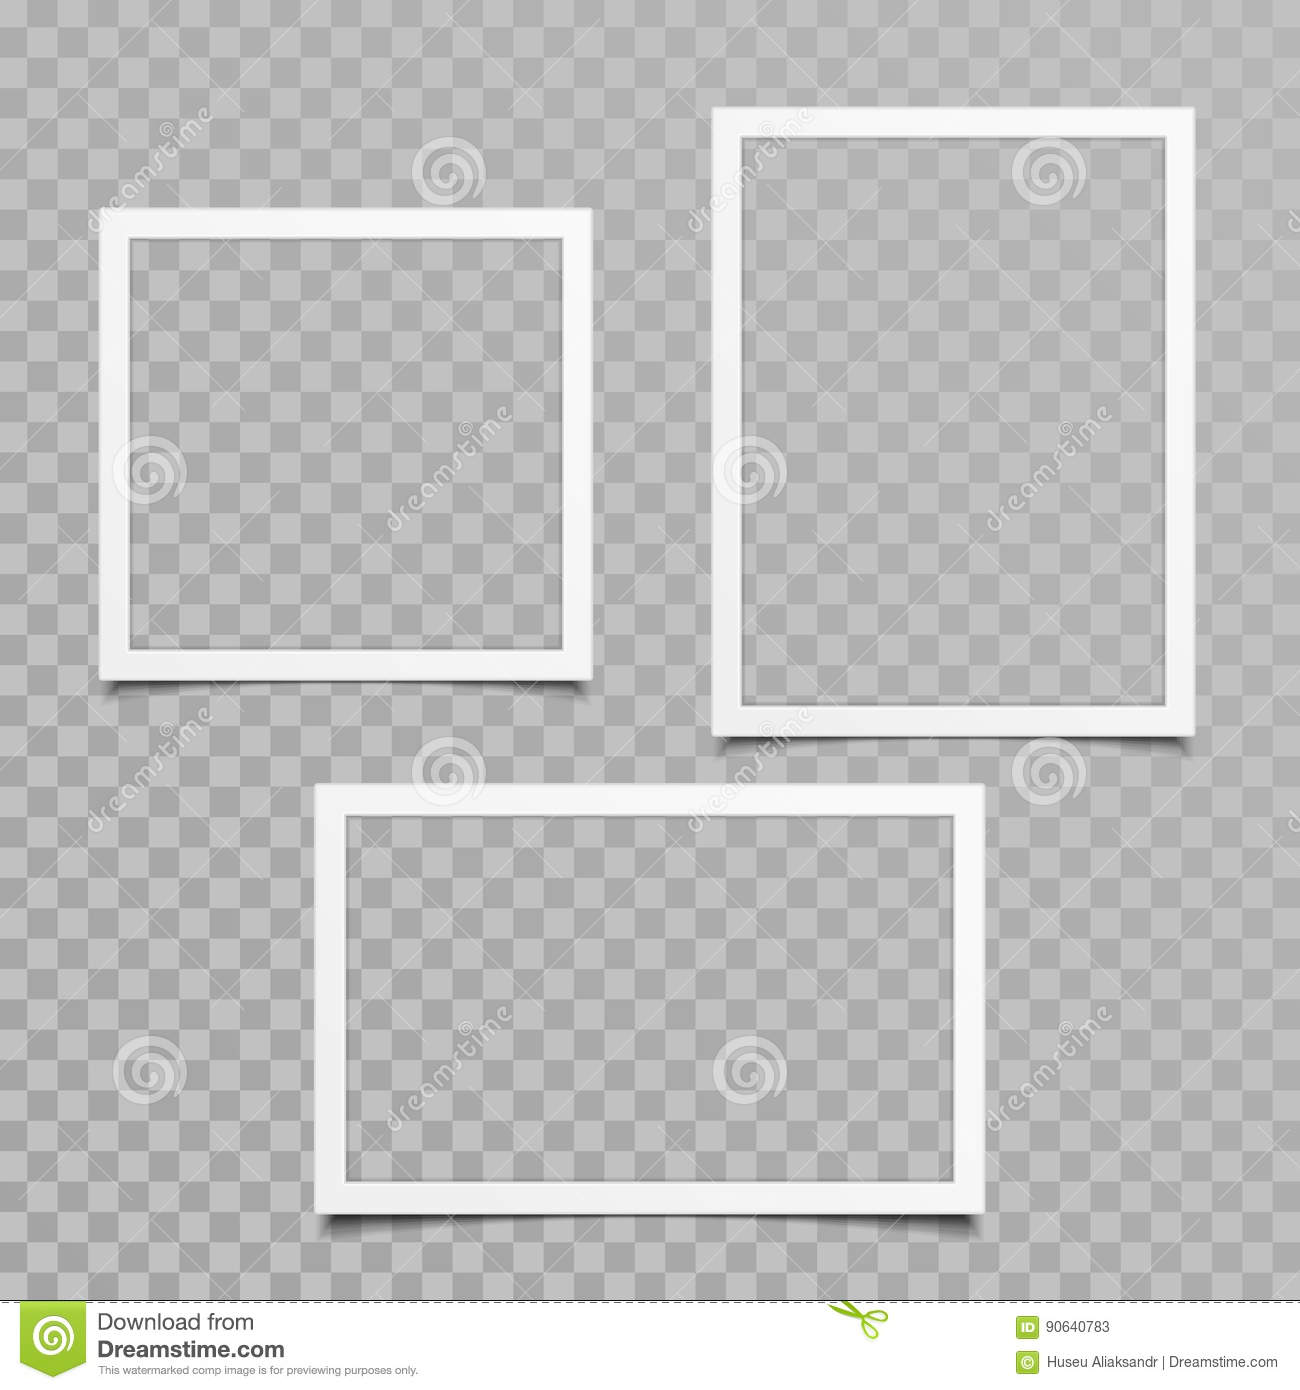 9451fe5f02 Blank Photo Frame Vector Set. Stock Vector - Illustration of empty ...